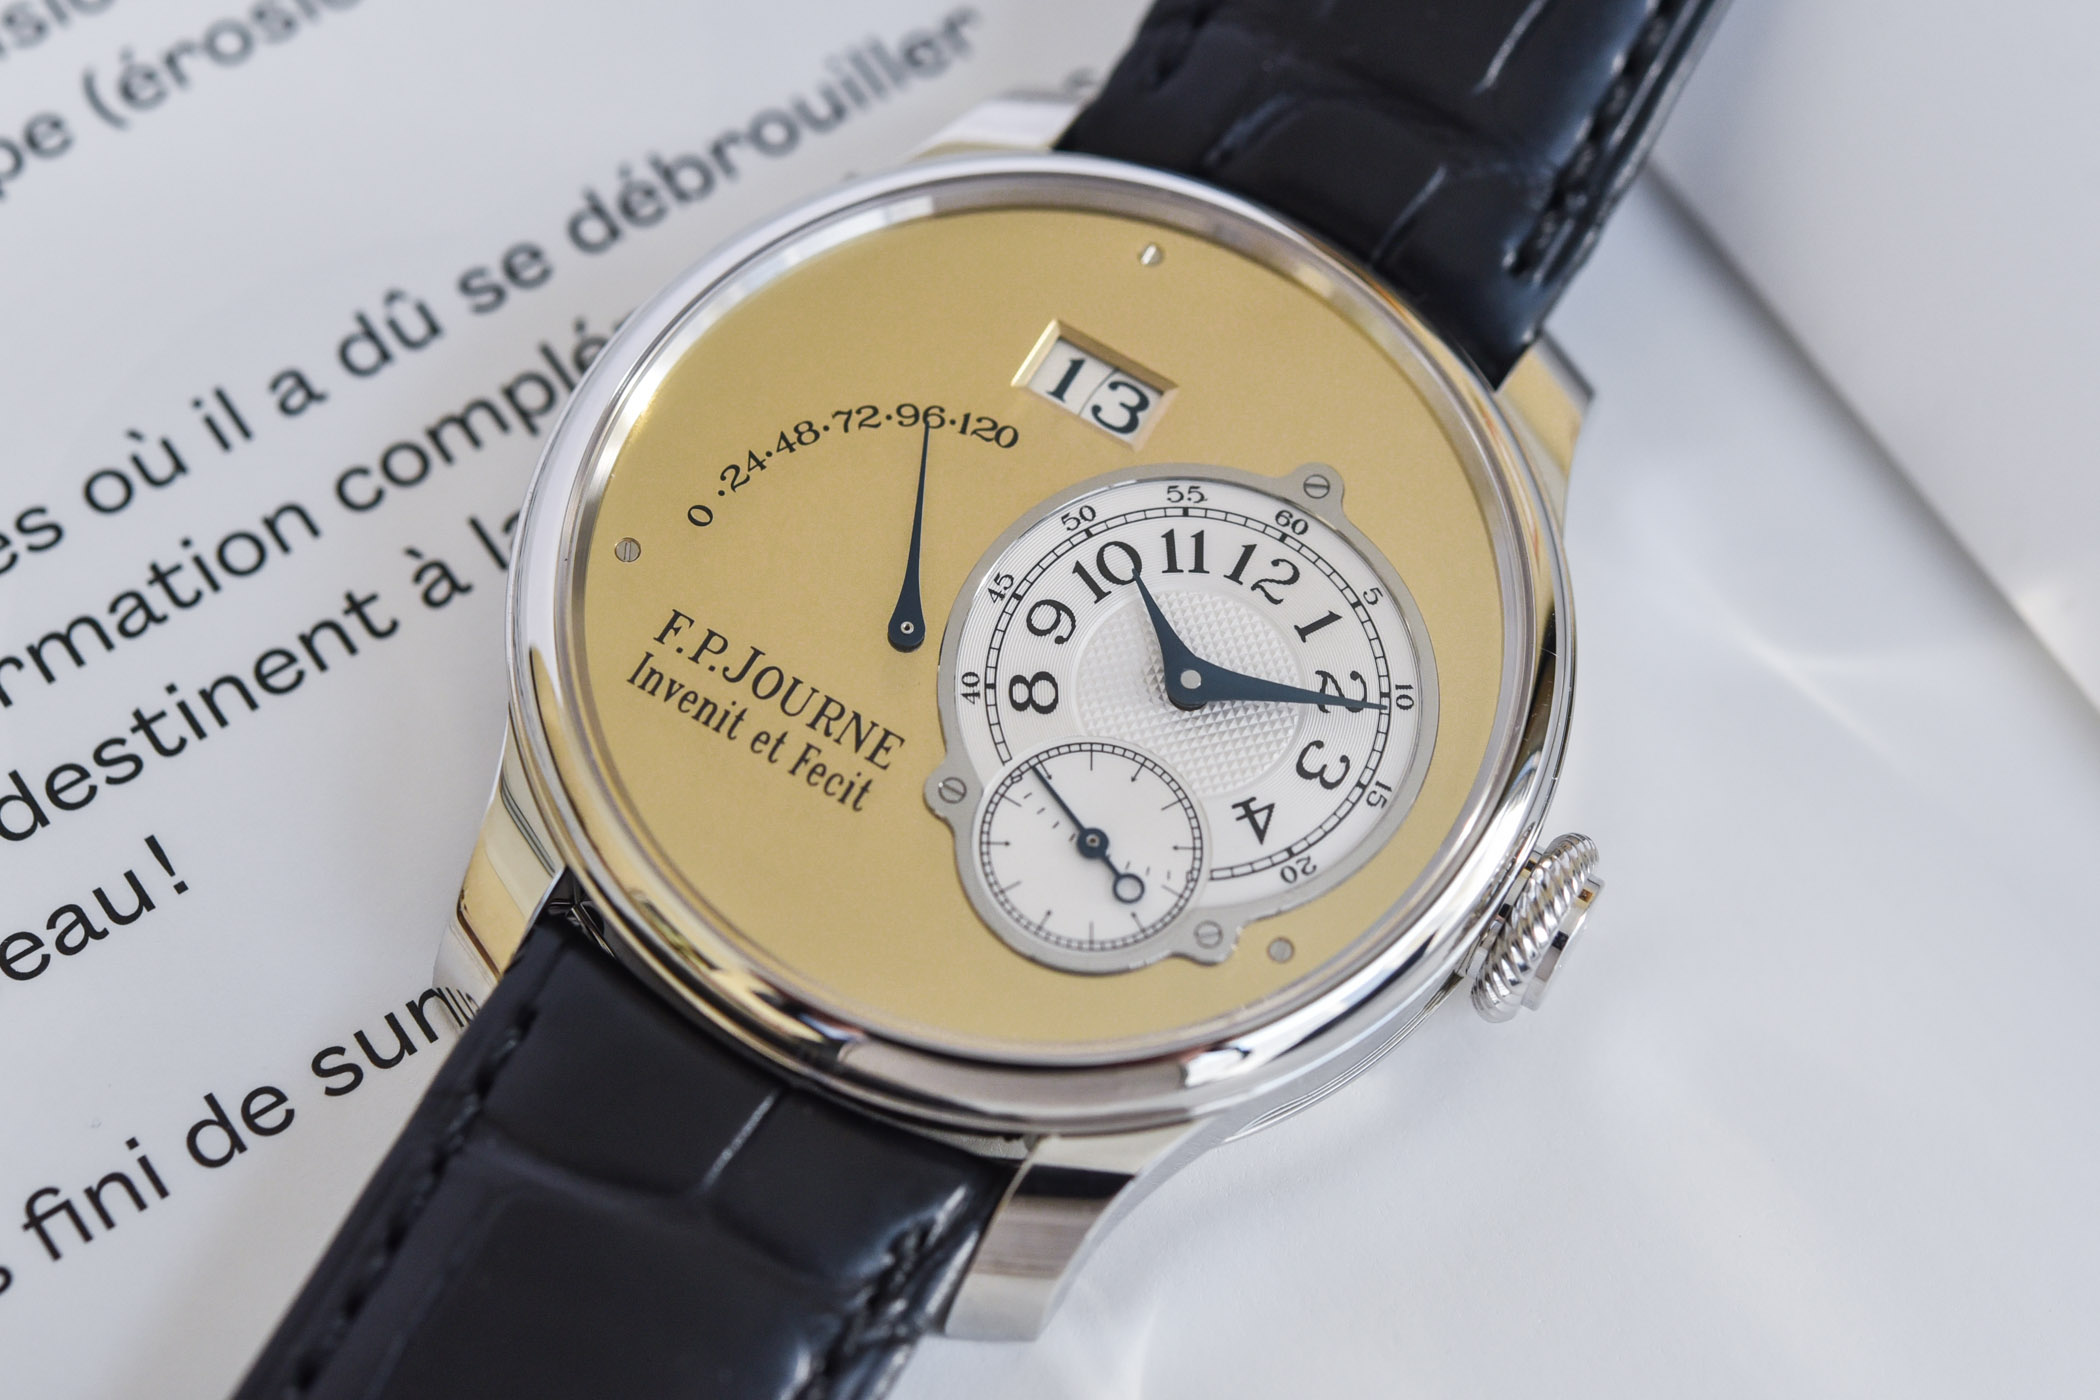 FP Journe Automatique Limited Edition 20th anniversary Octa - review - 10